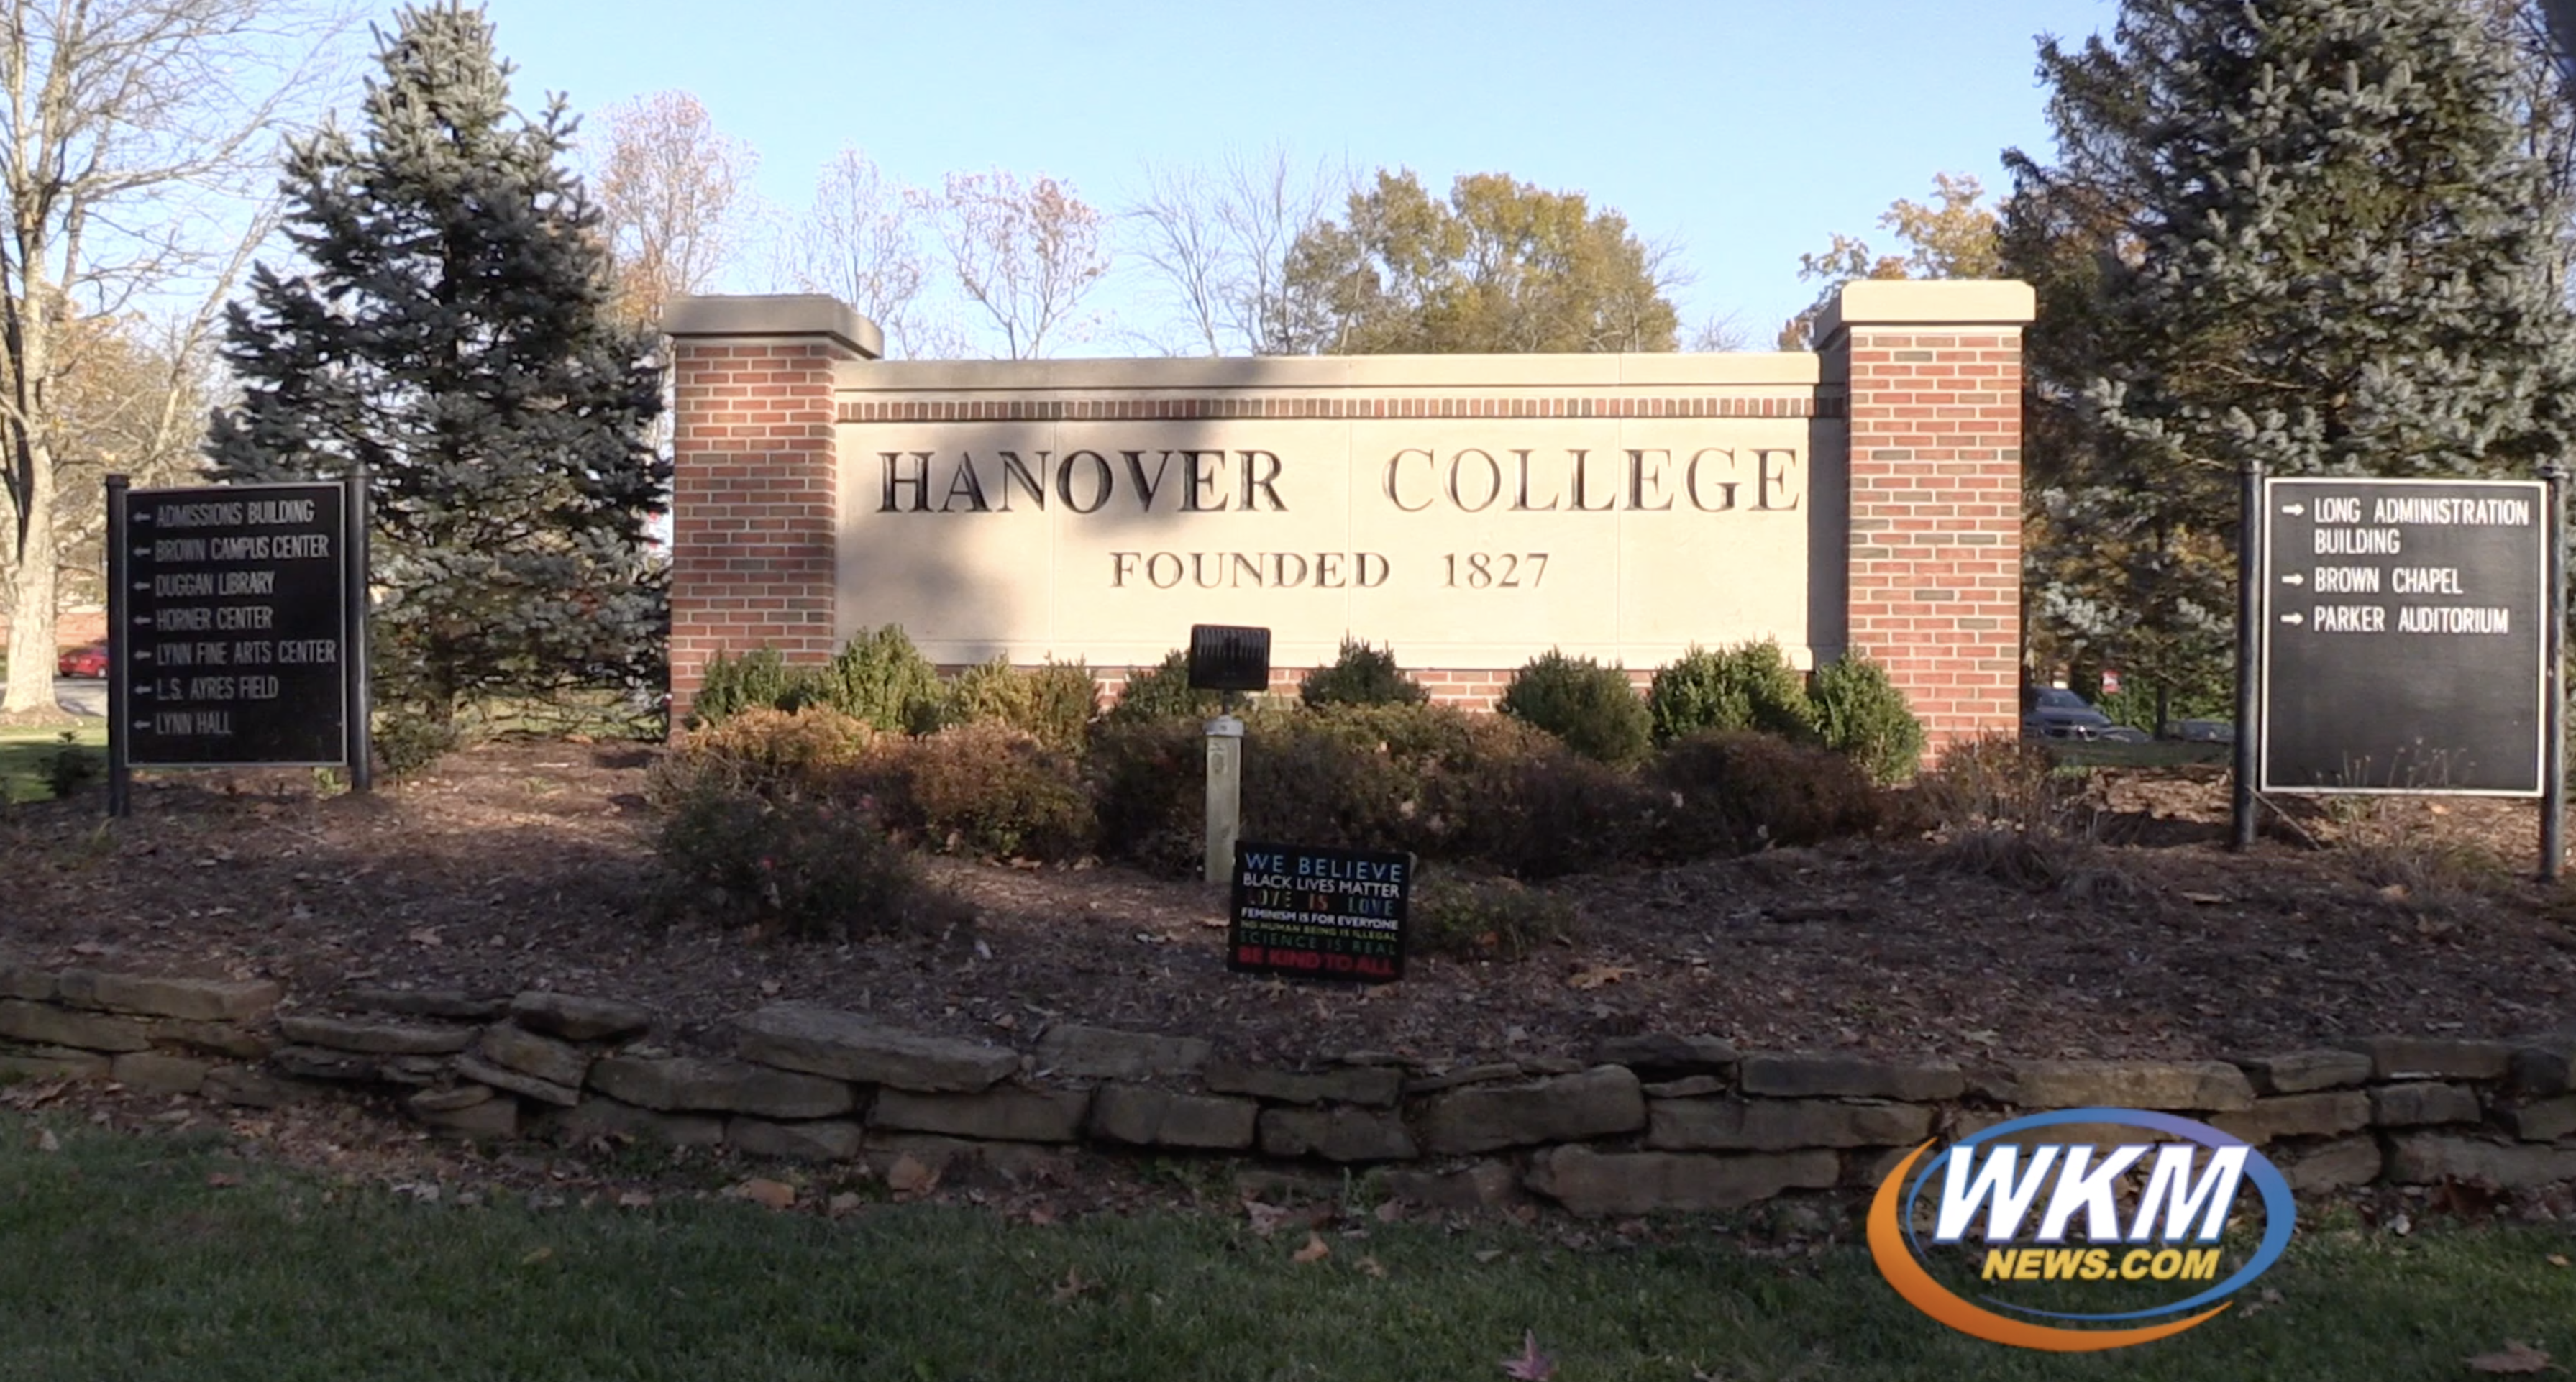 Hanover College's President Attends City Council Meeting